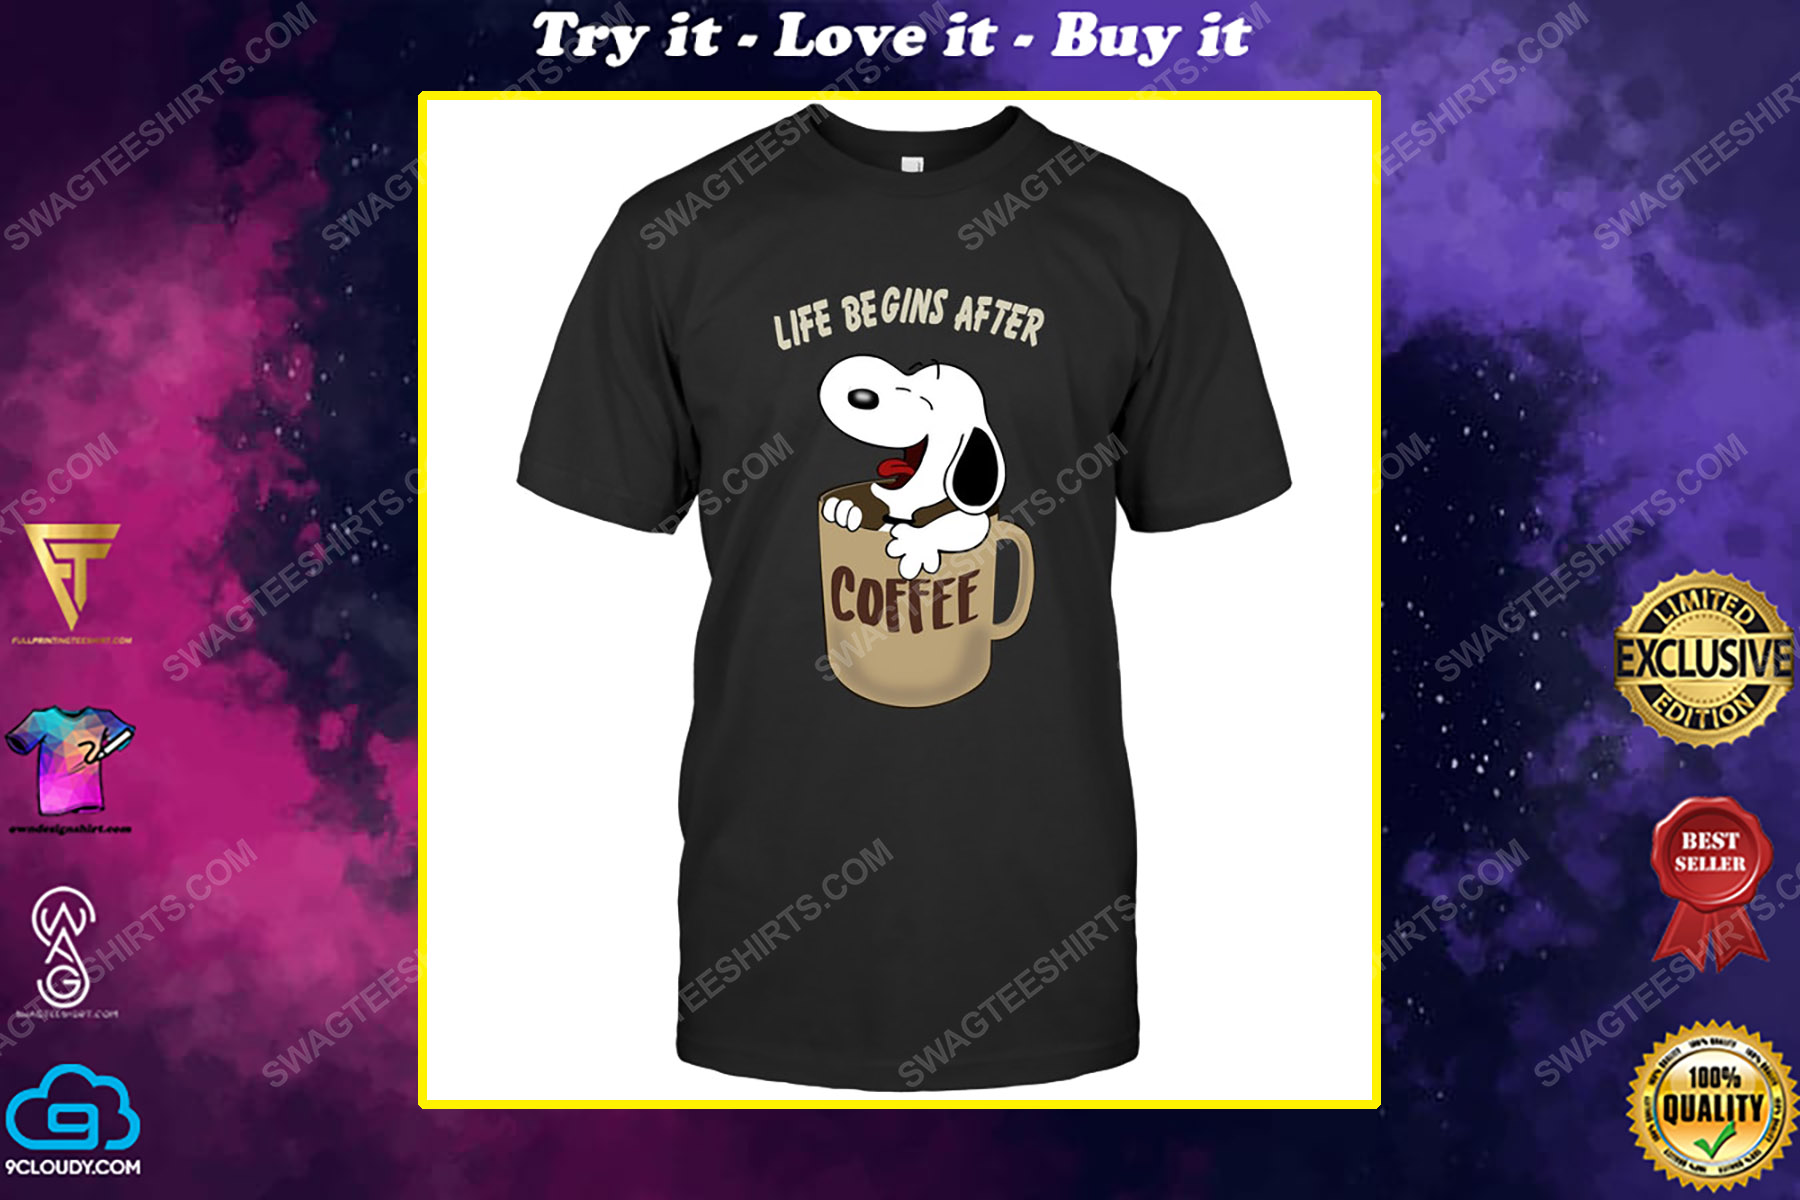 The peanuts snoopy life begins after coffee shirt